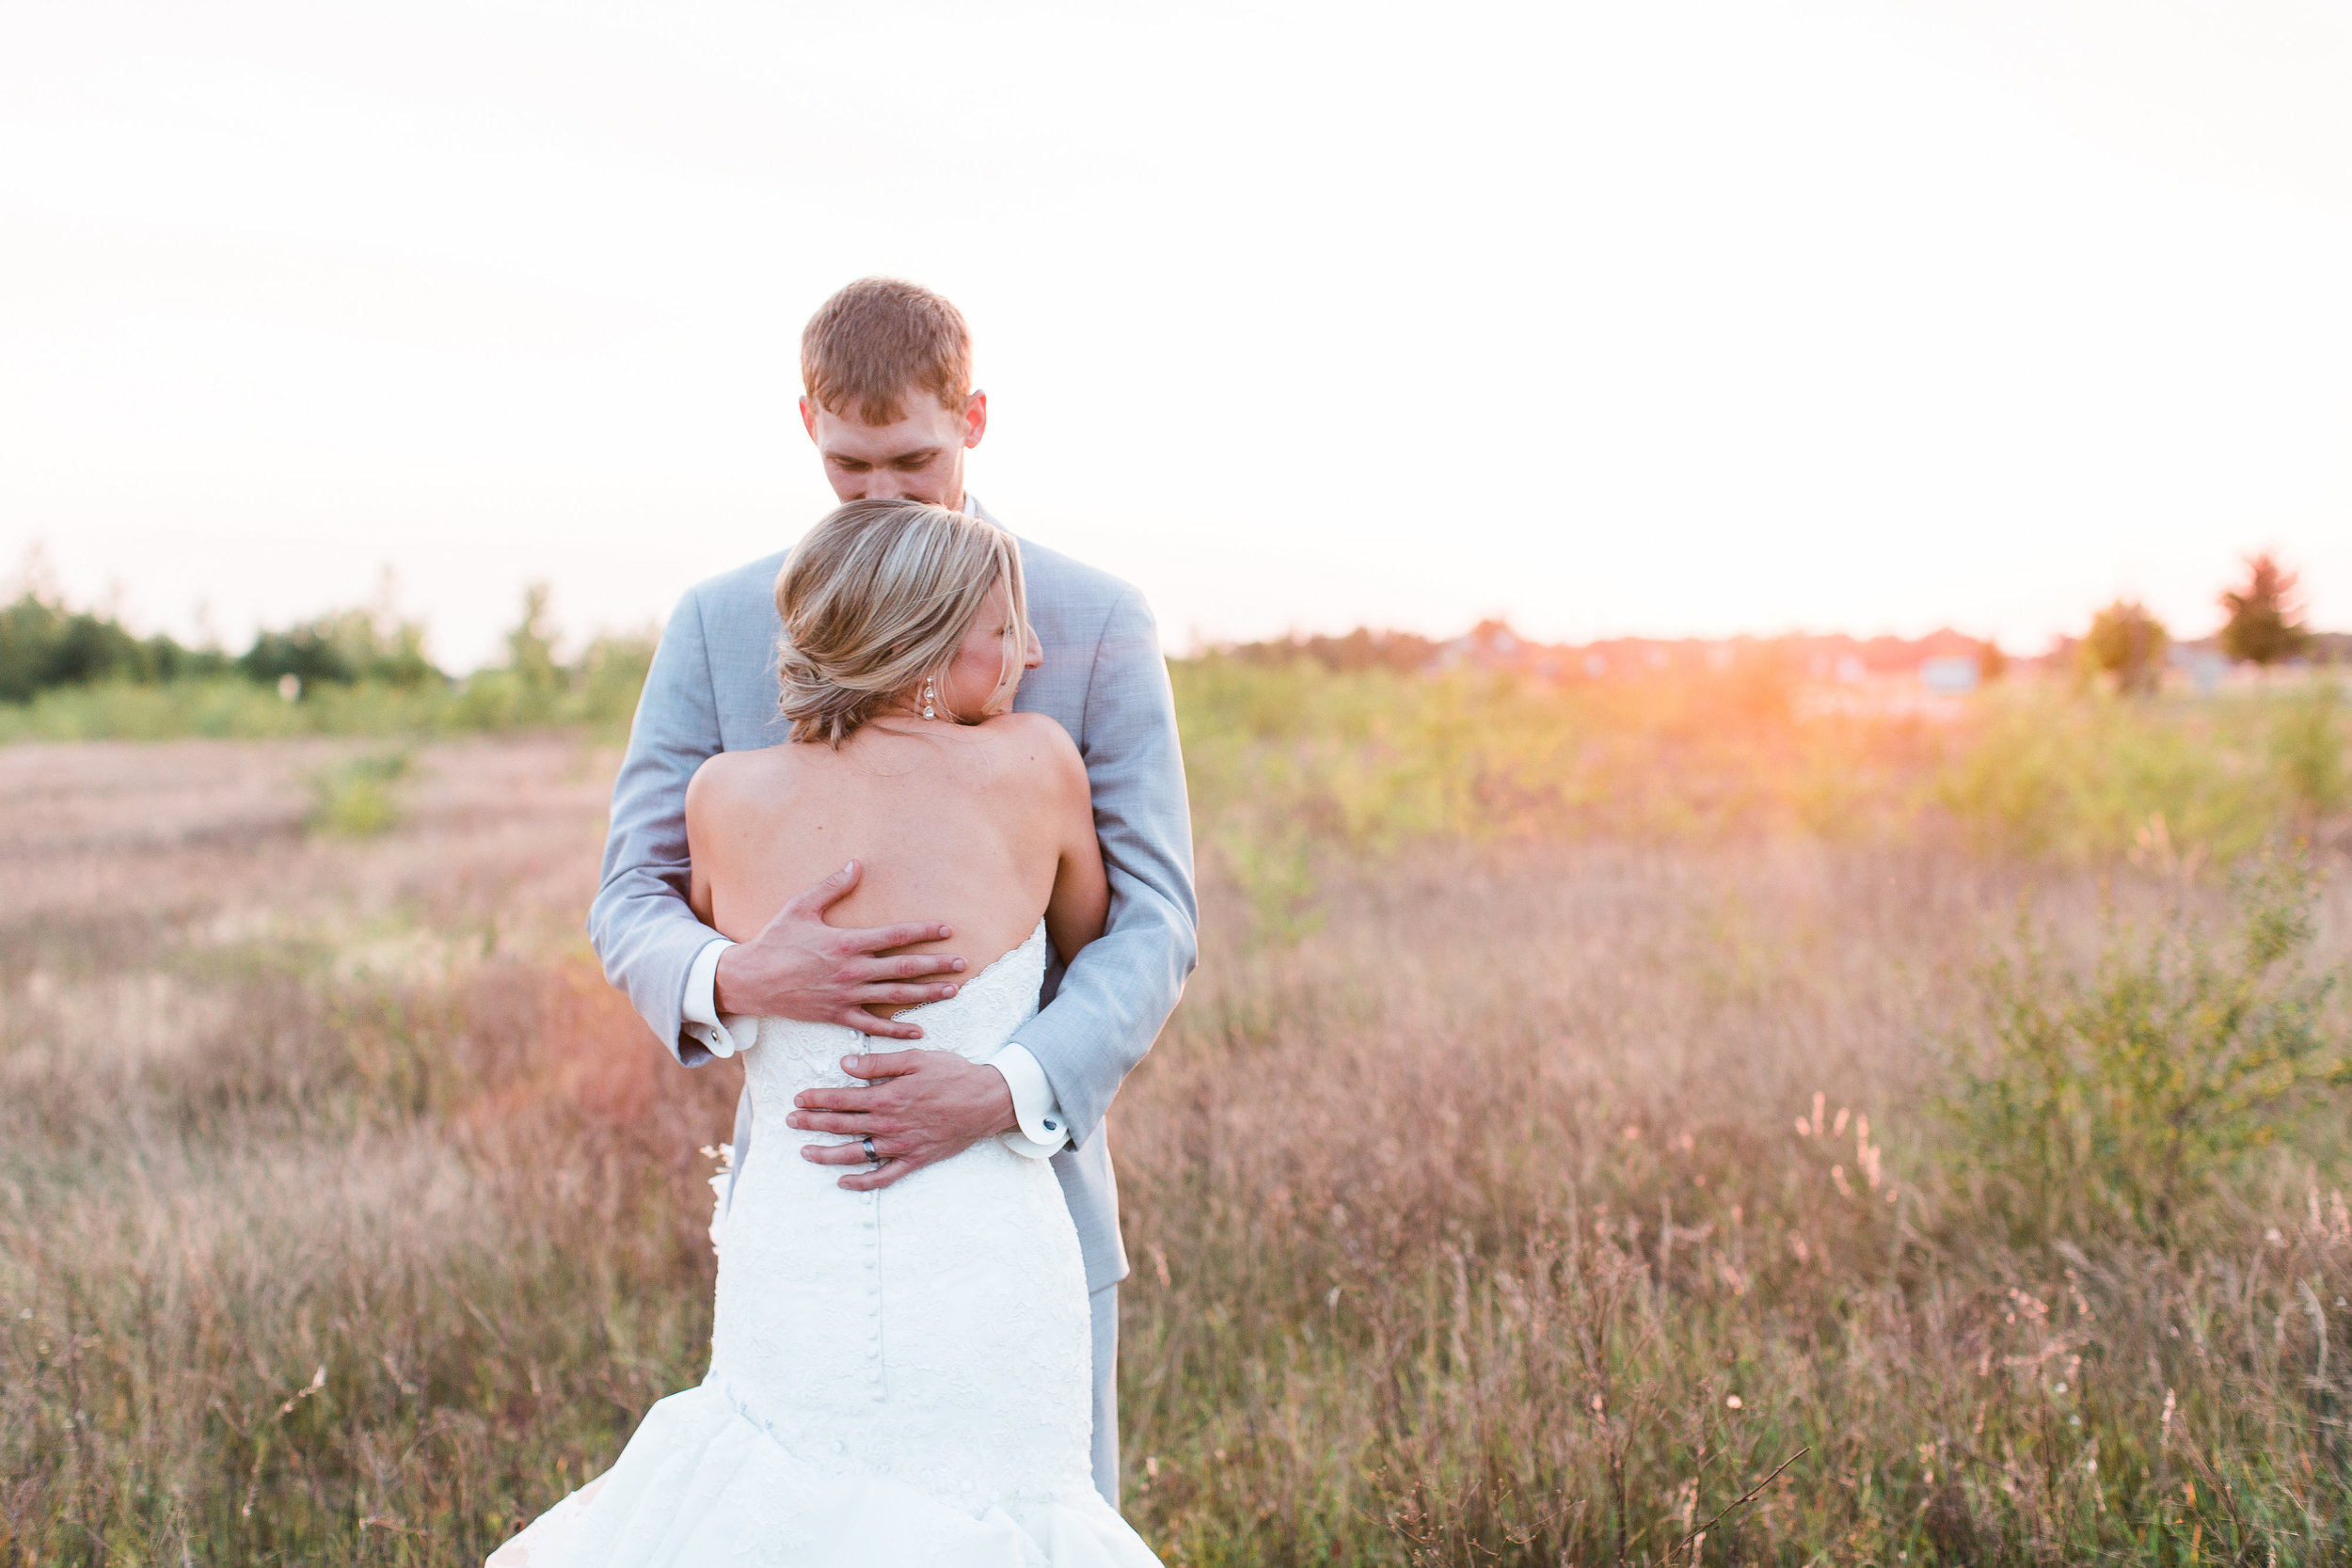 Rural Buffalo Minnesota wedding bride and groom hugging in field at sunset Buffalo Minnesota wedding Minnesota wedding photography Mallory Kiesow Photography